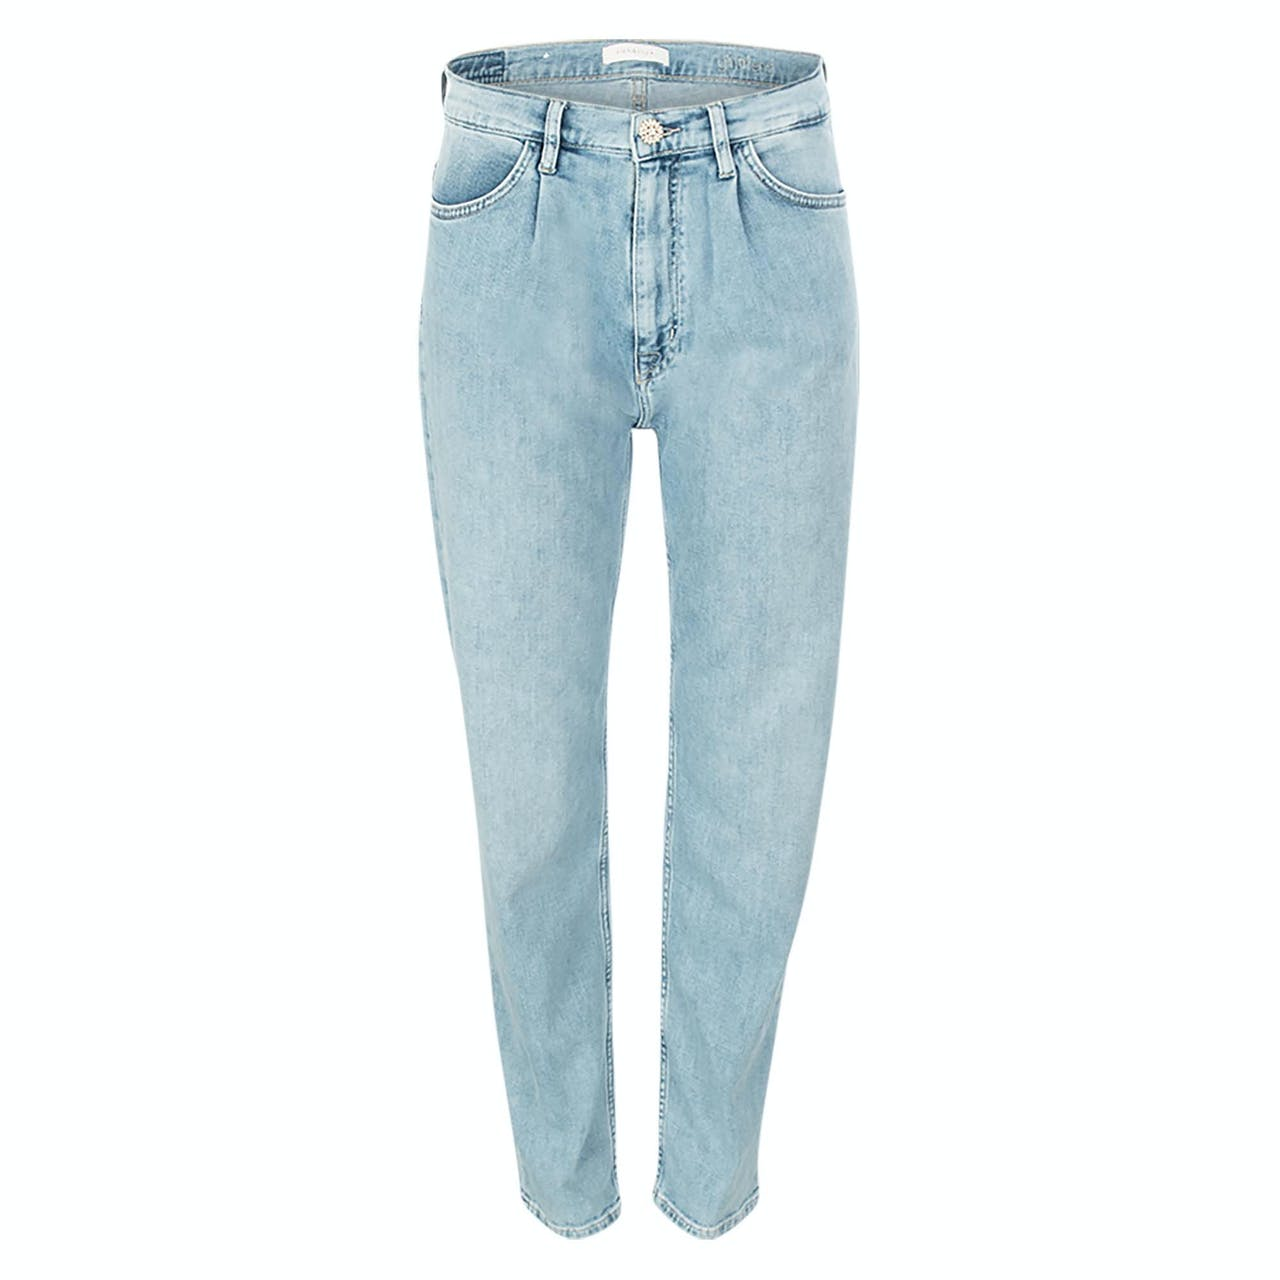 Jeans - Comfort Fit - Girlfriend